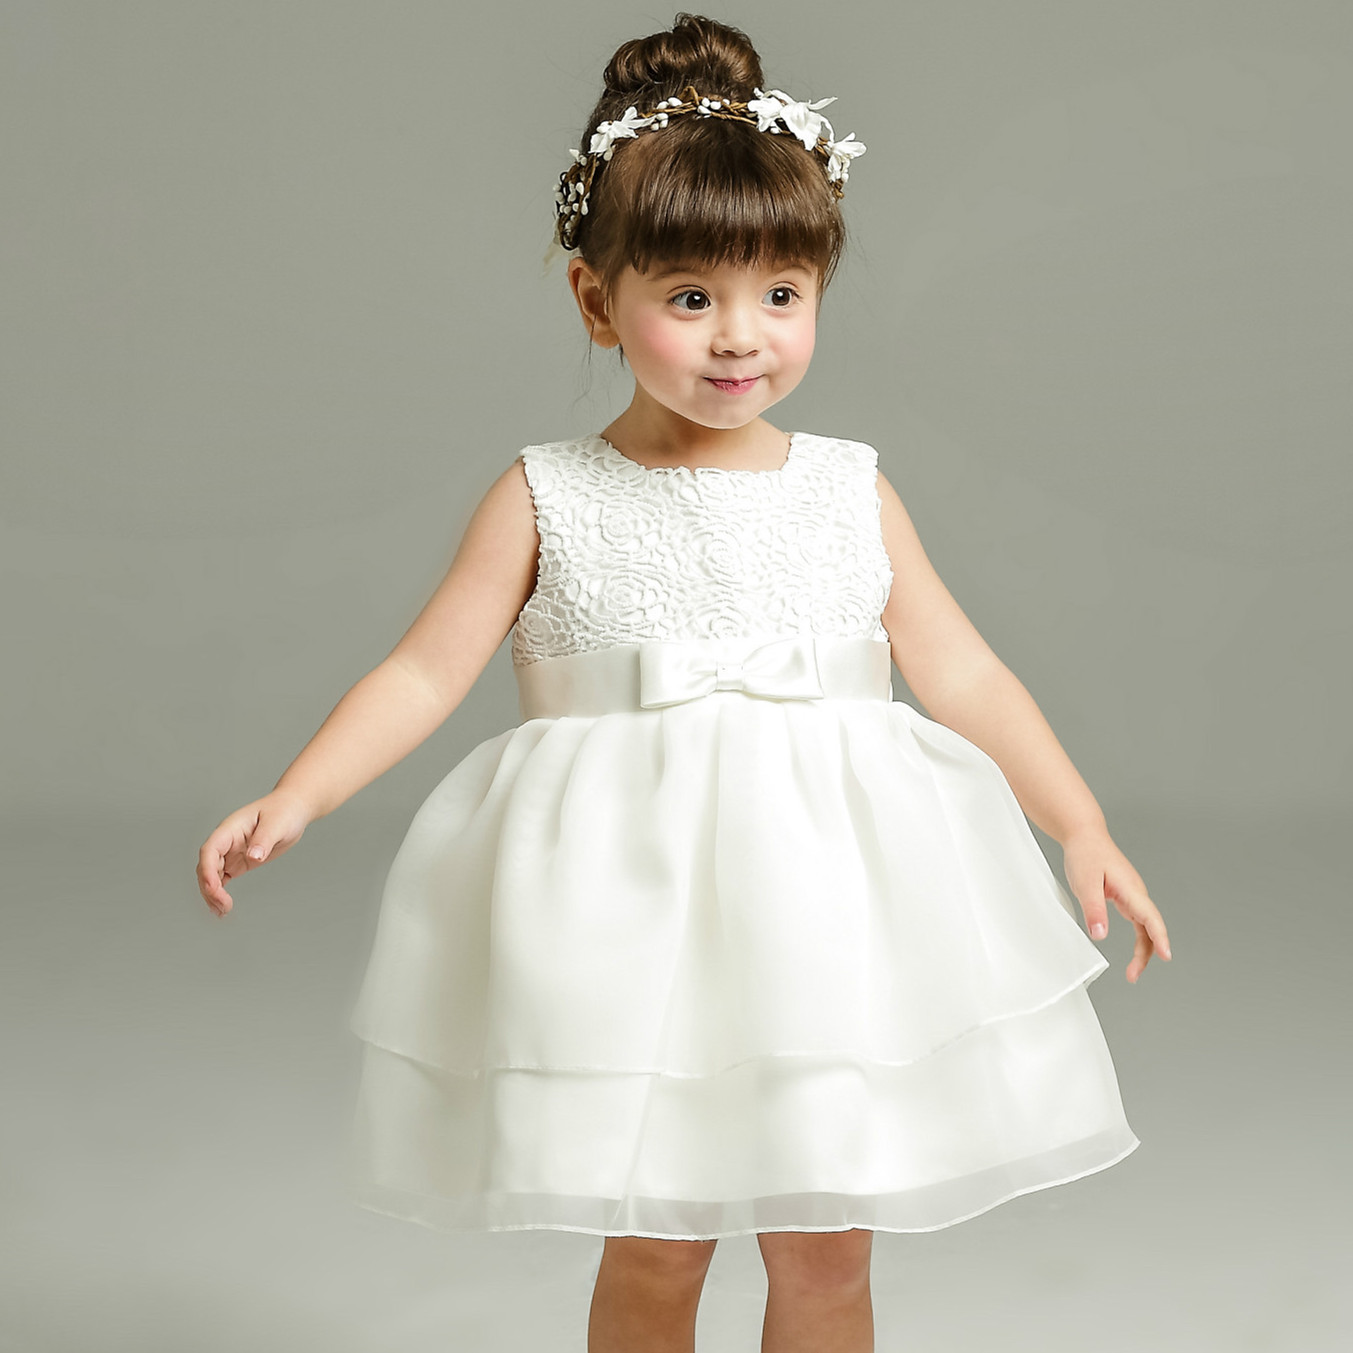 Wedding Gowns For Babies: 1 Year Old Baby Girl Dress Princess Wedding Birthday